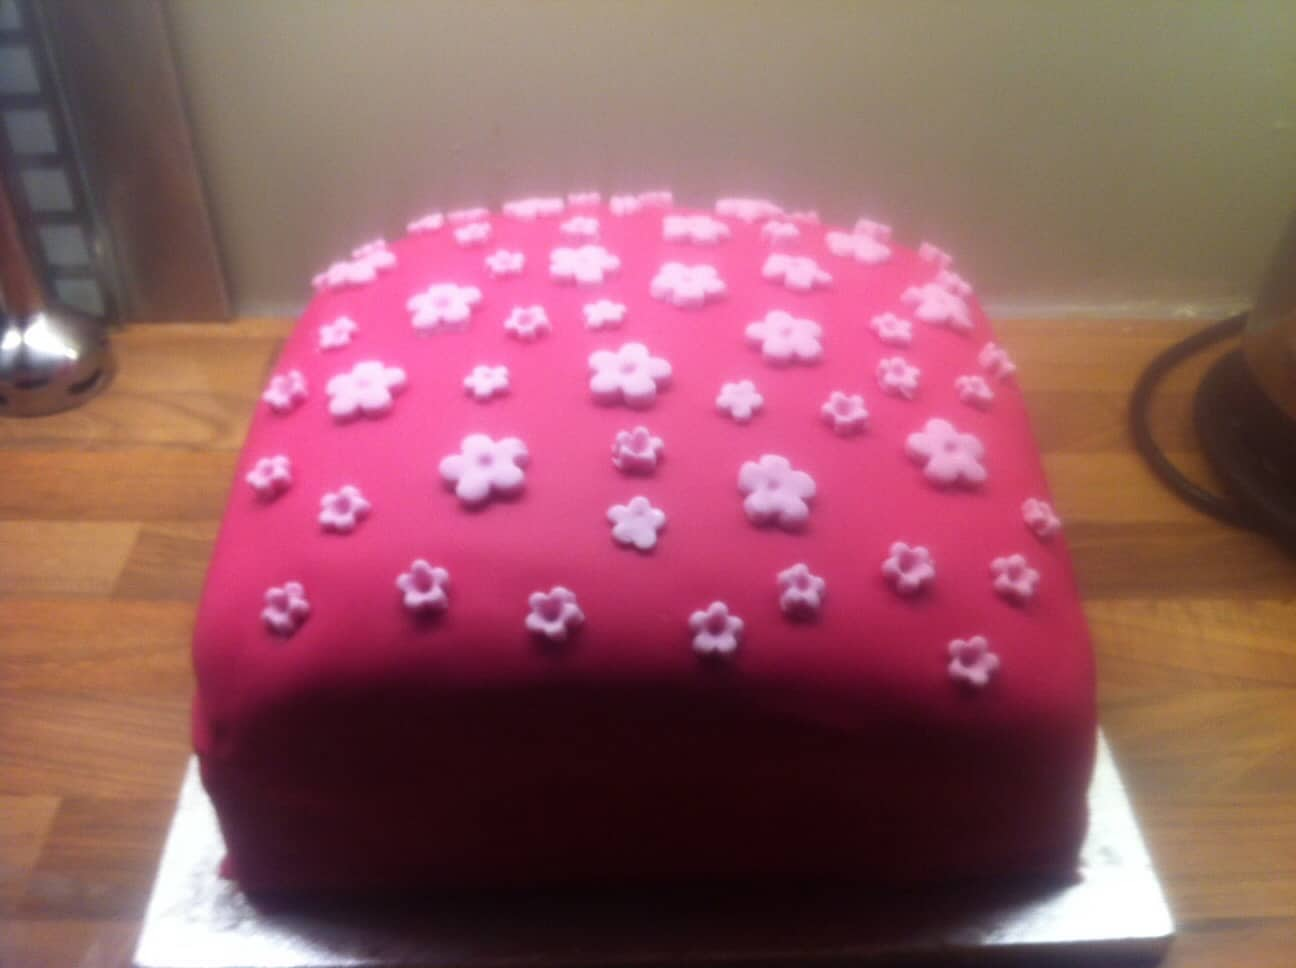 Fifth birthday cake – pink fondant icing with daisies